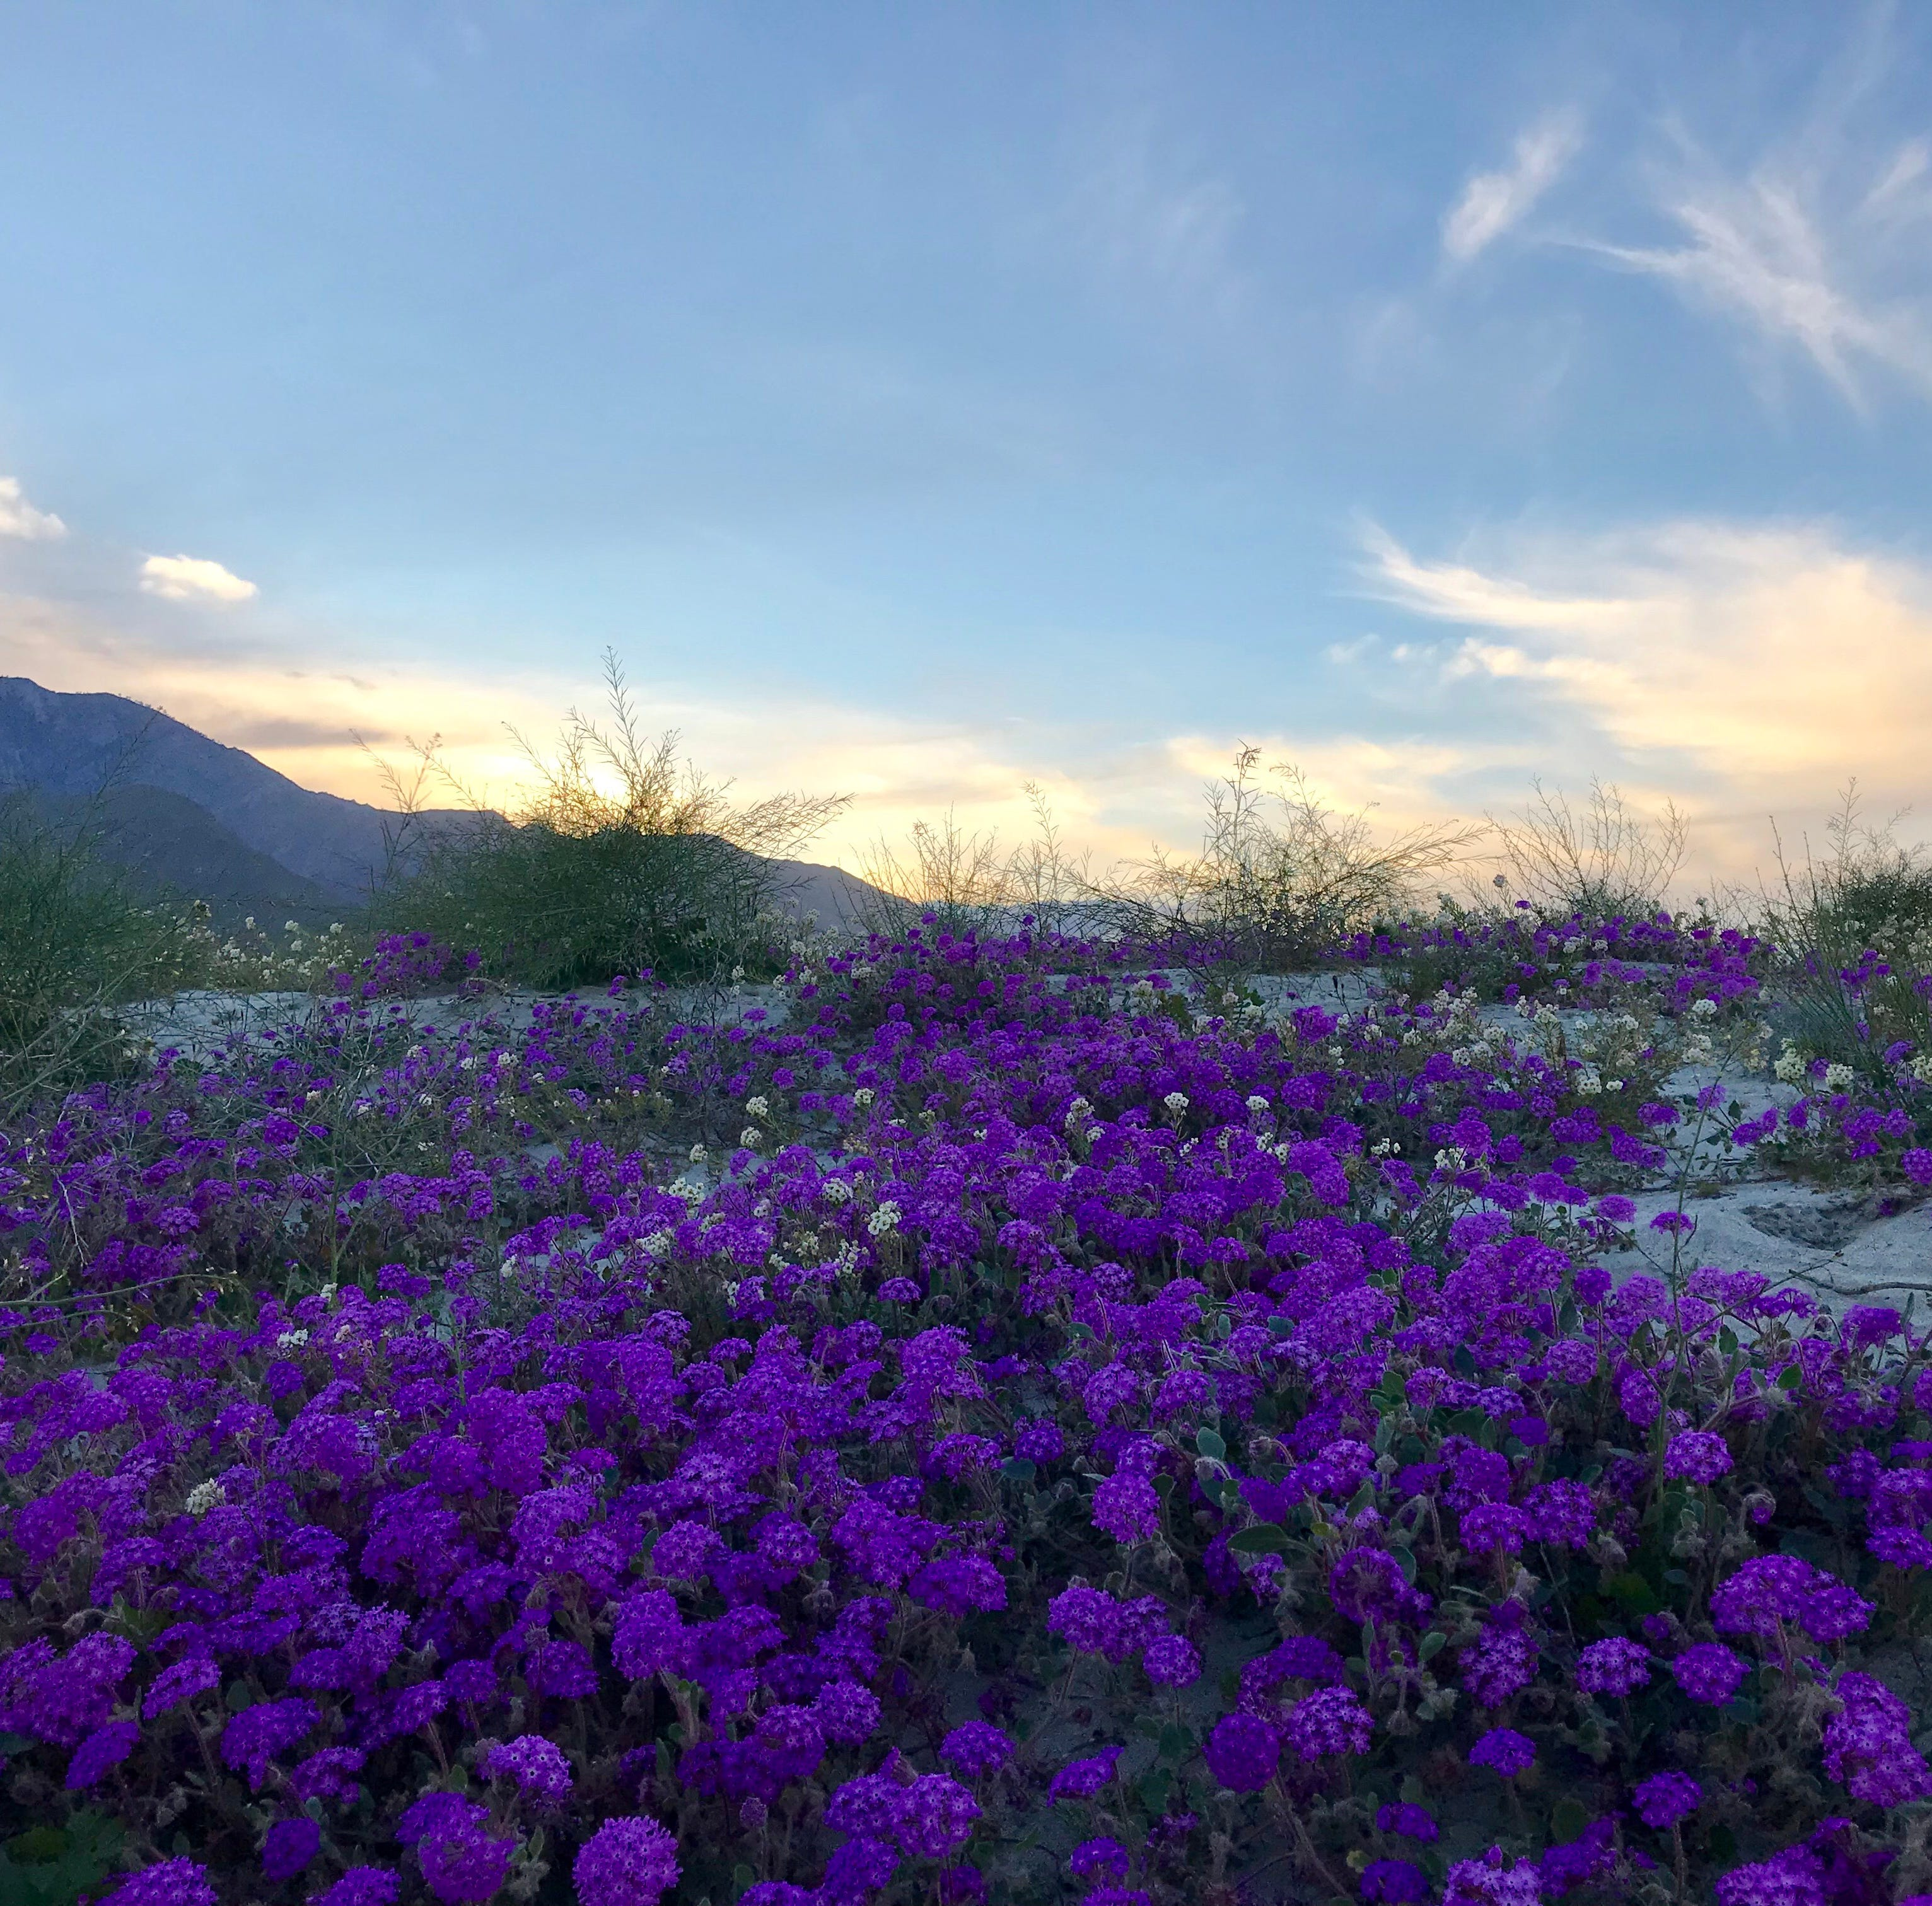 Not up for a road trip? Here's a lazy local's guide to the wildflower super bloom